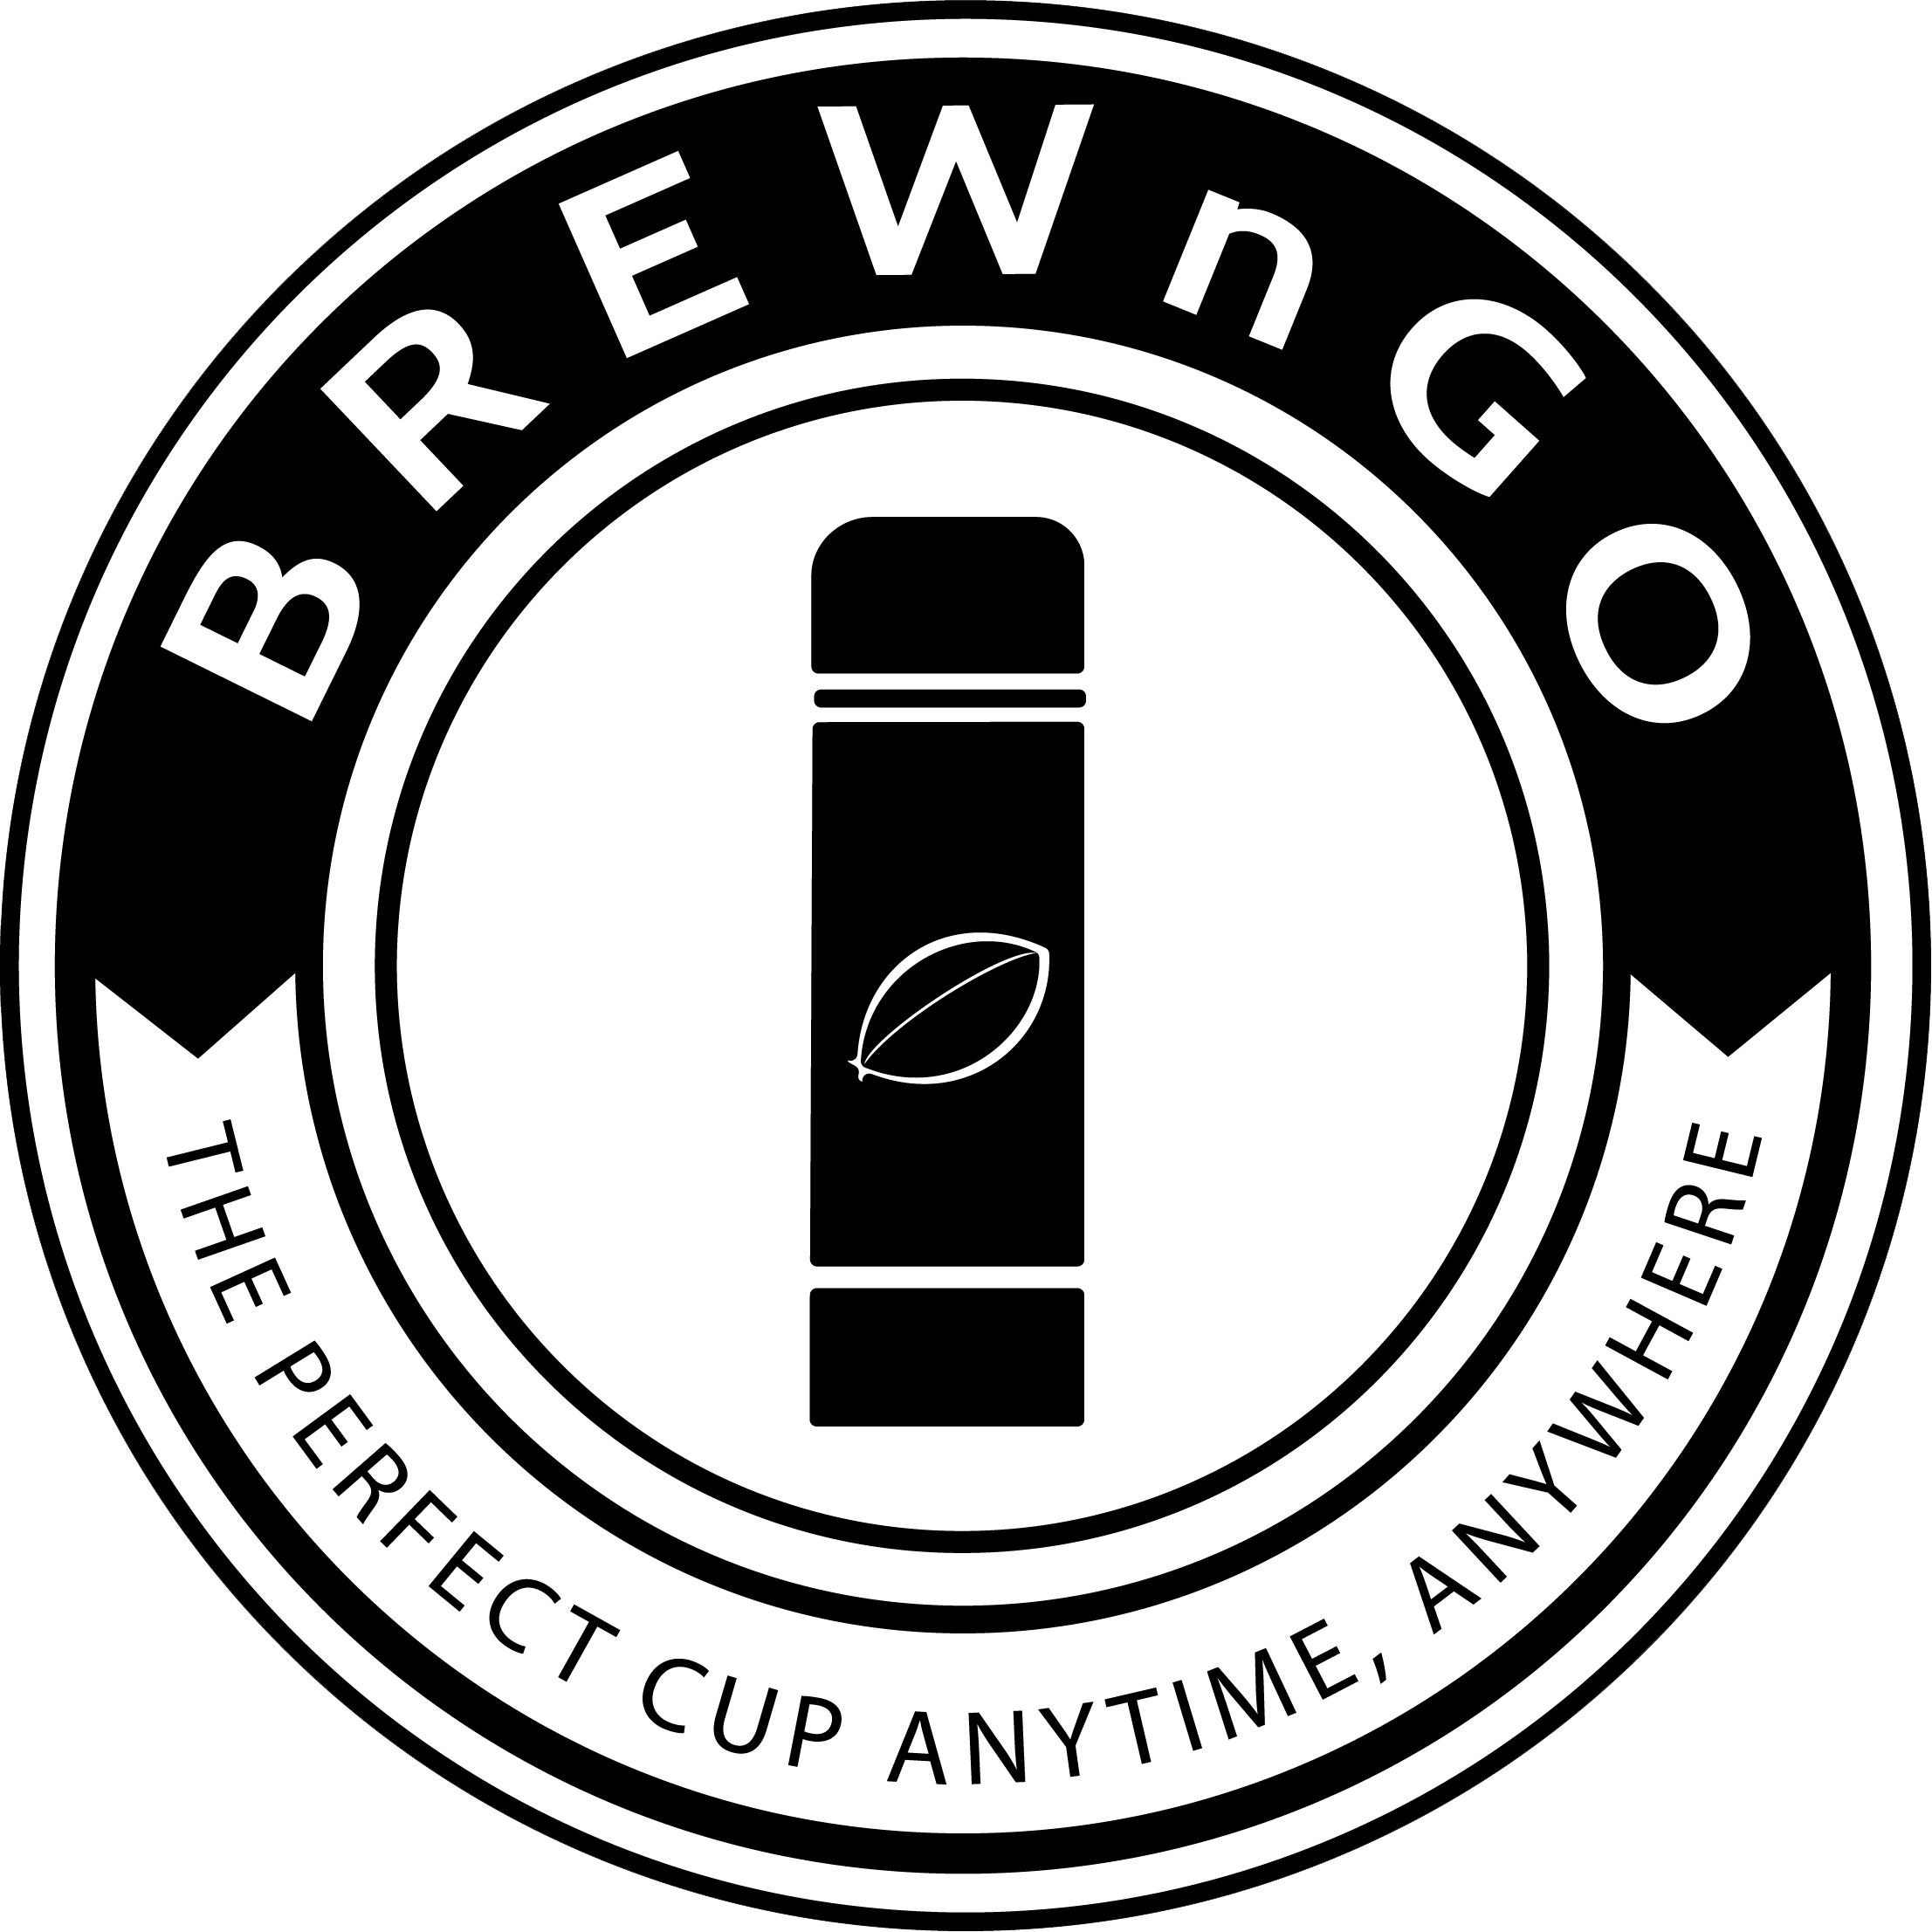 BREWnGO Technologies   BREWnGO is creating the world's first automatic and portable coffee and tea brewer conveniently anytime, anywhere